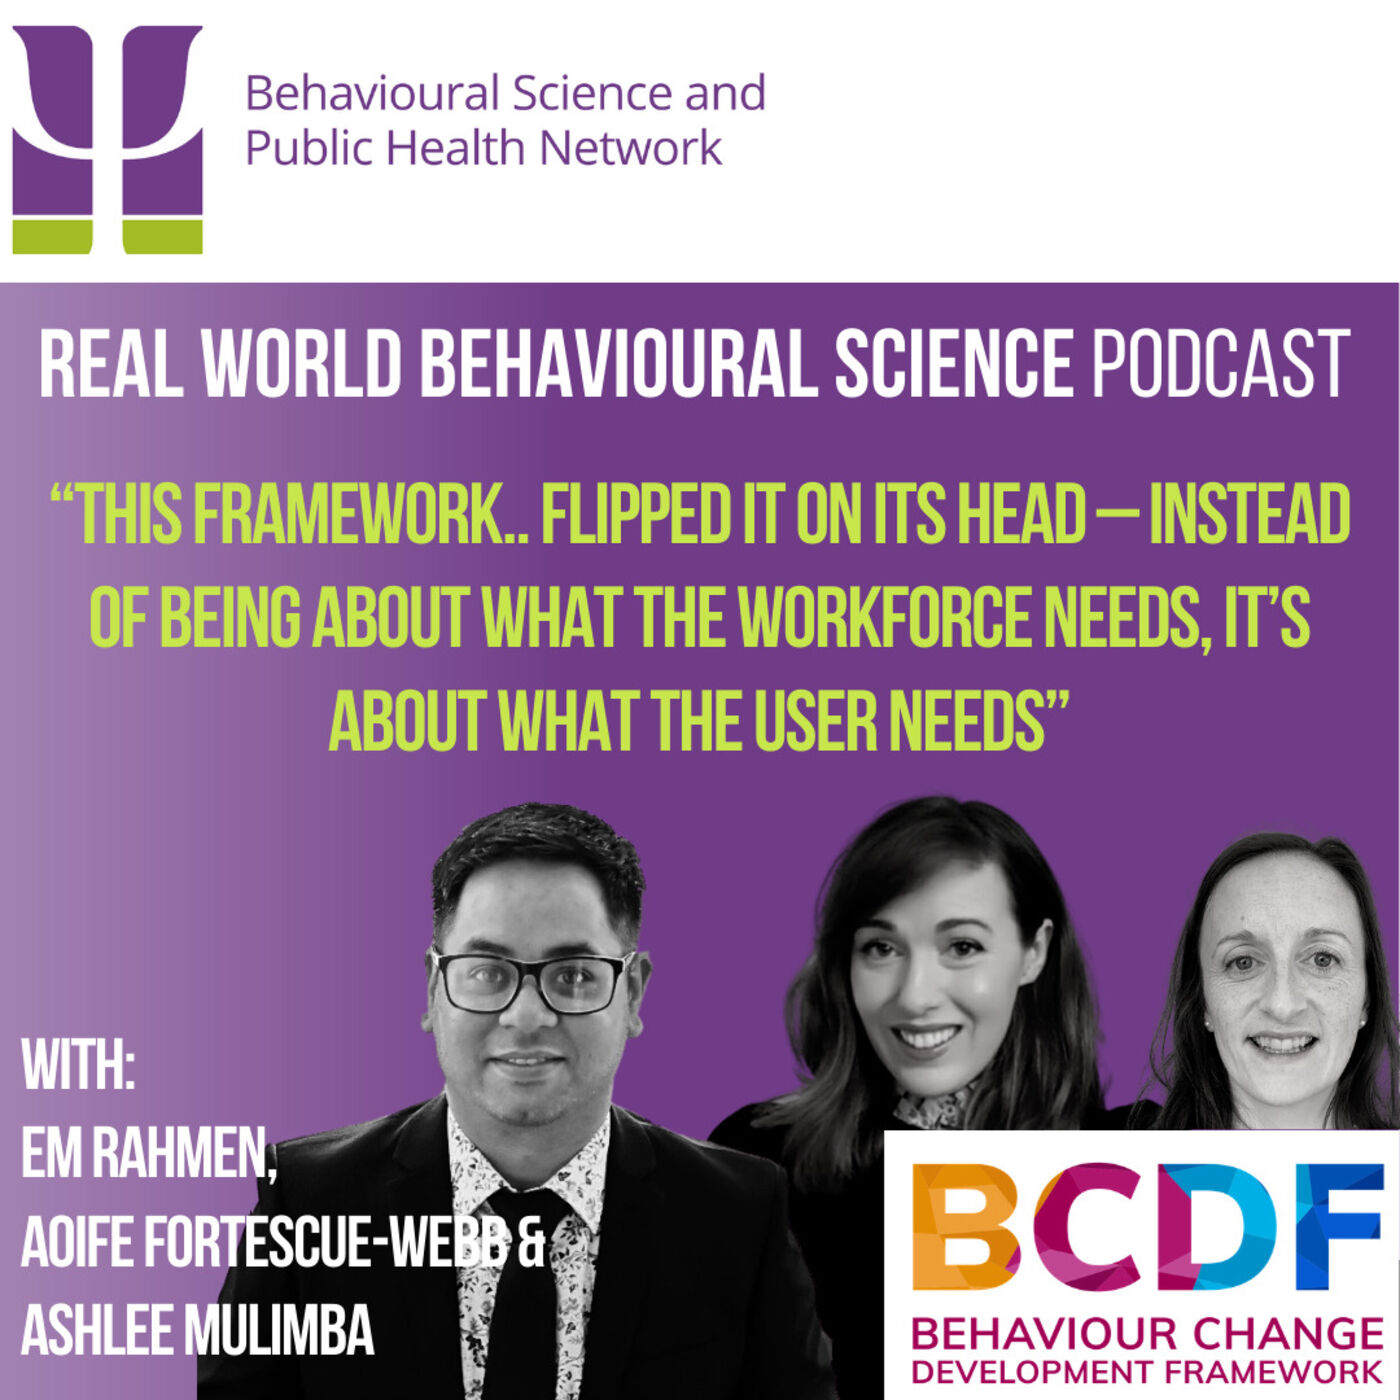 Introducing the Behaviour Change Development Framework (BCDF) - with Em Rahmen, Aoife Fortescue-Webb and Ashlee Mulimba